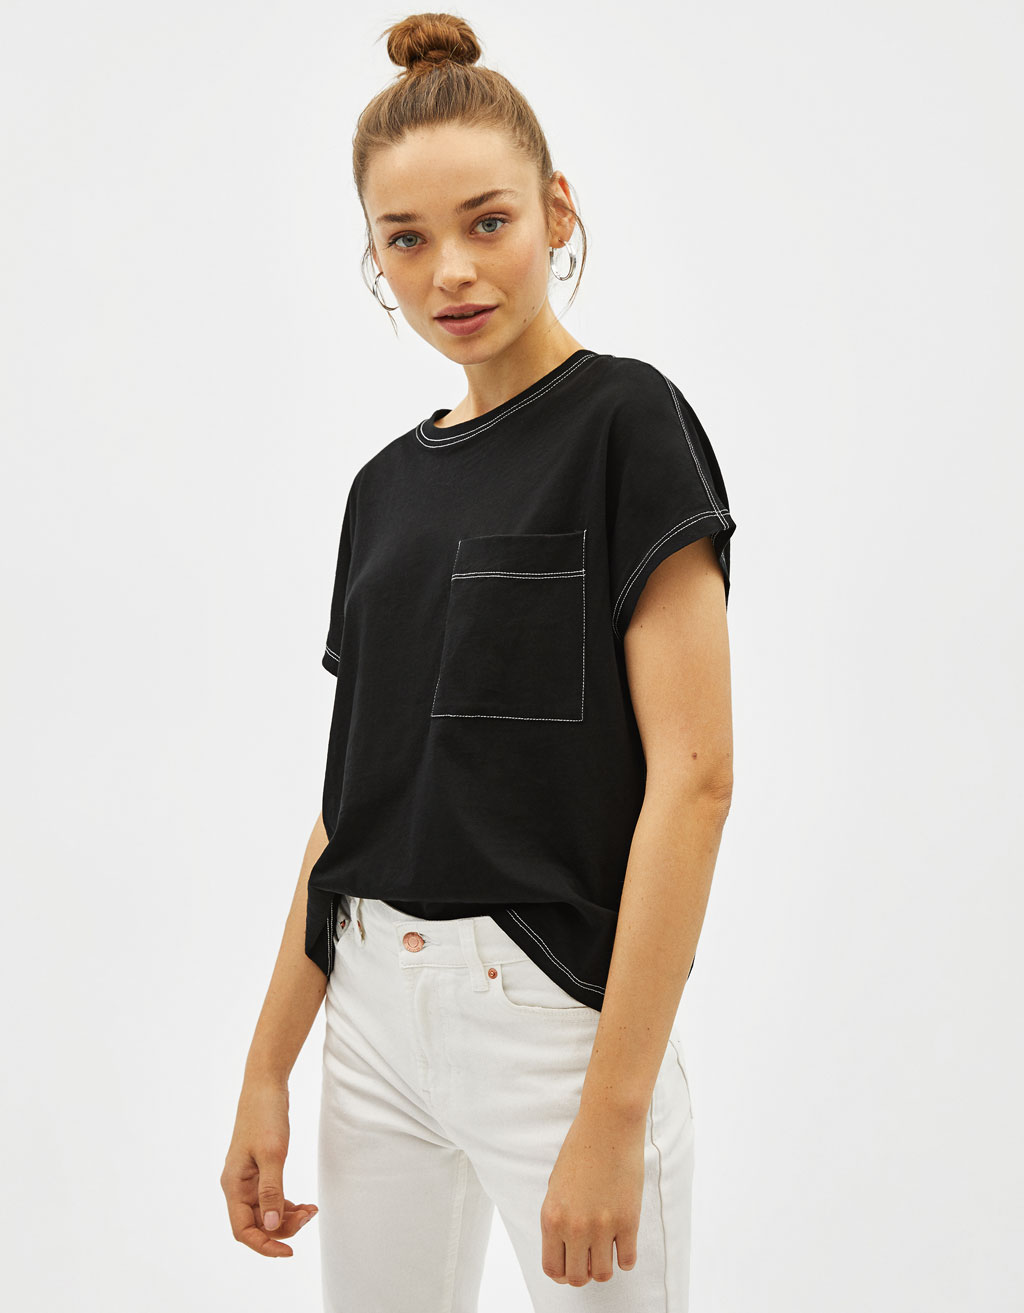 Contrast T-shirt with pocket